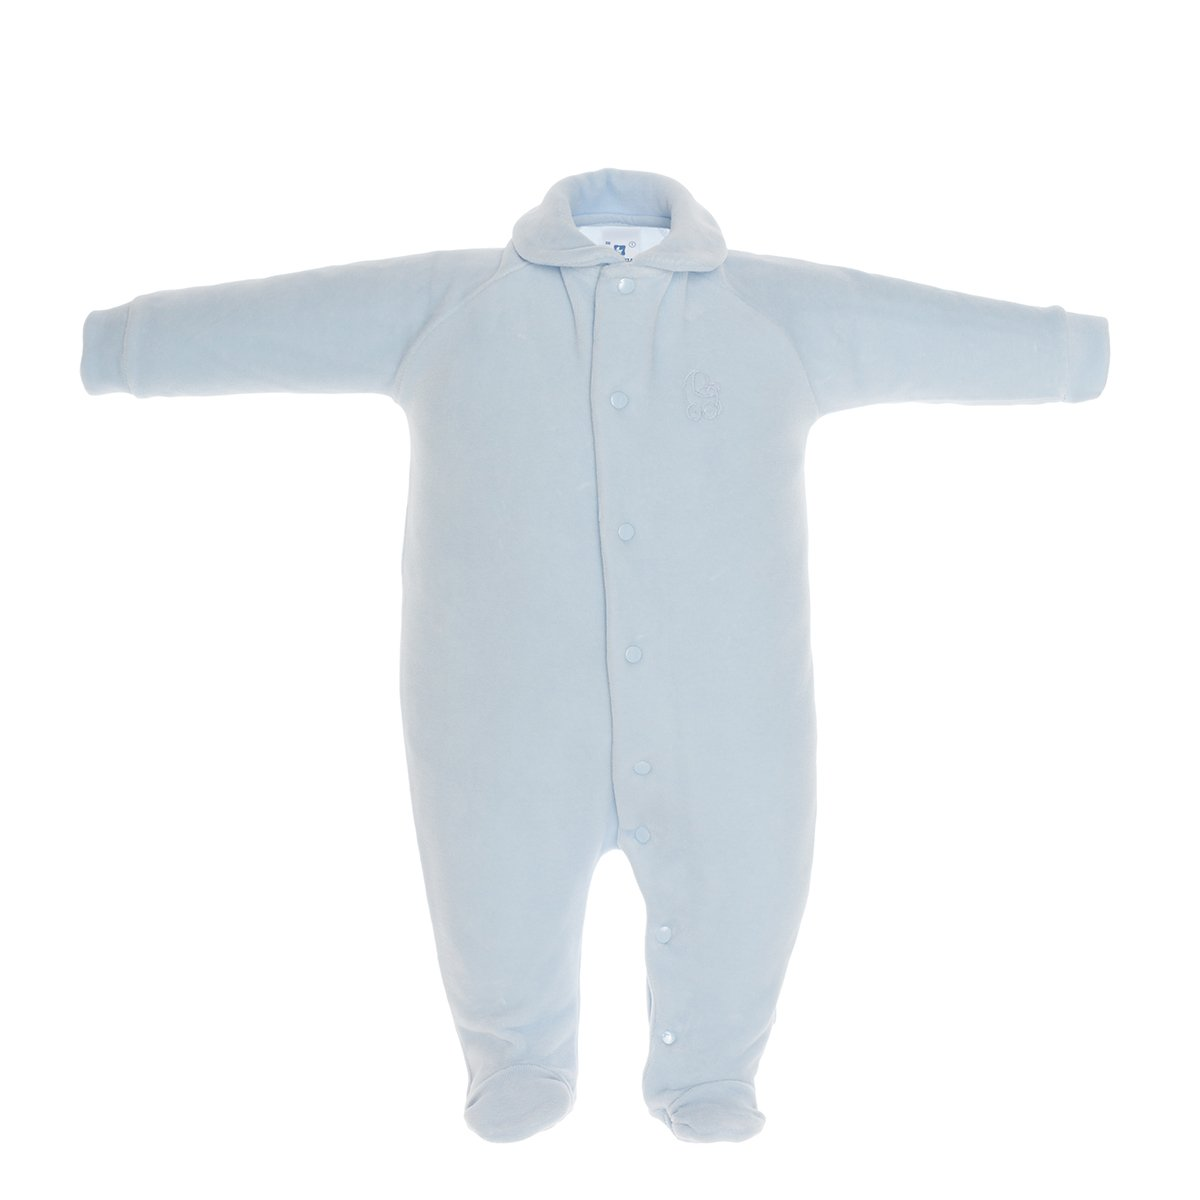 Cambrass Unisex Baby All in One Velvet Playsuit with Collar